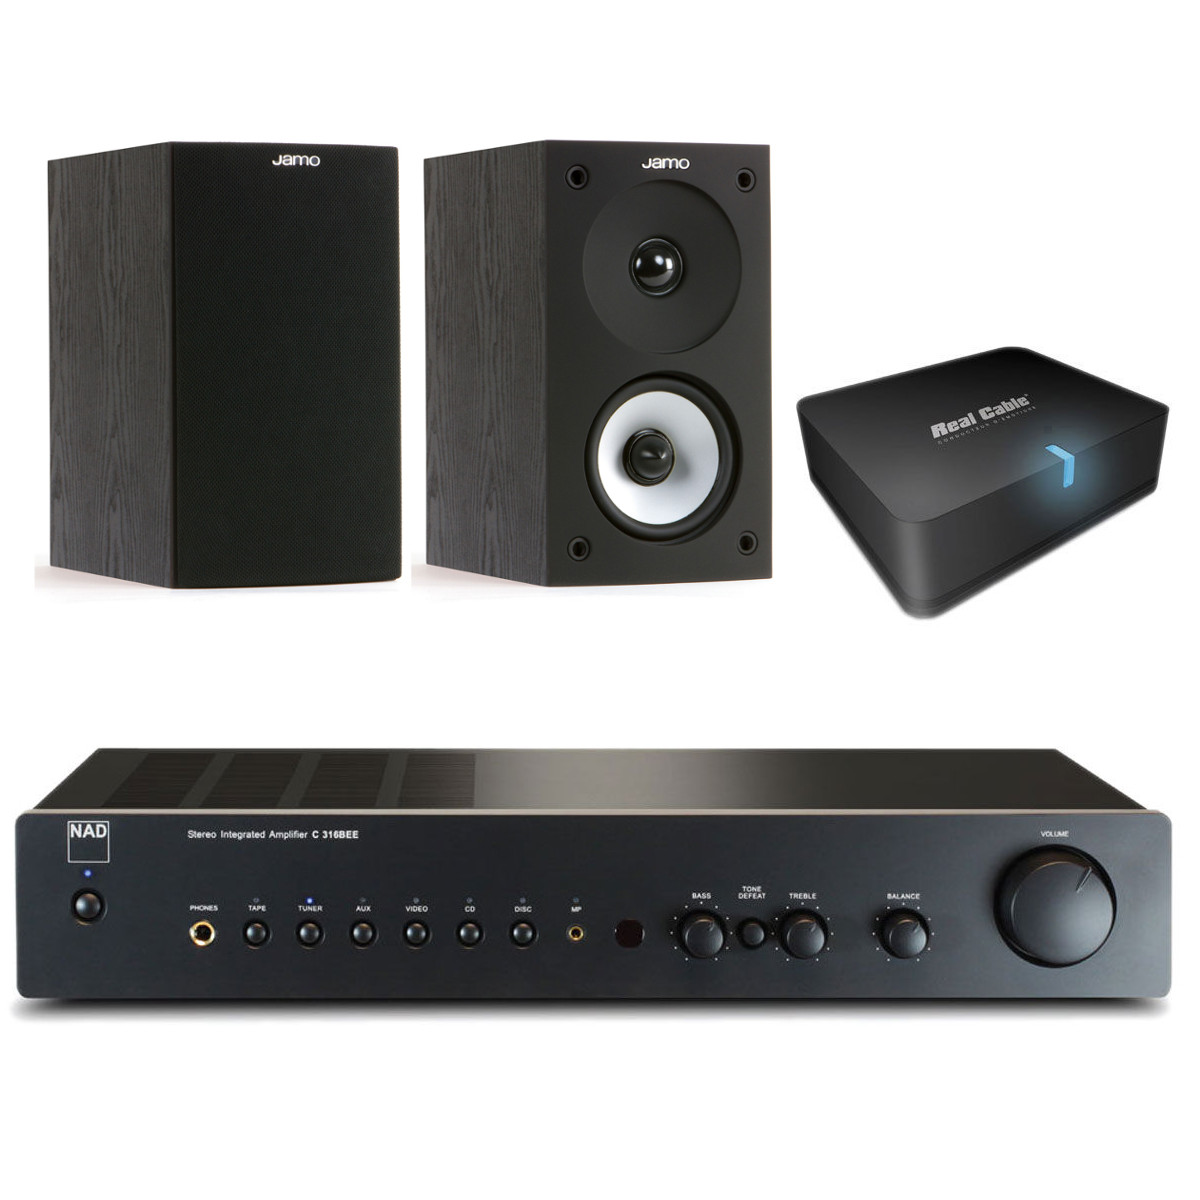 Nad C 316bee Graphite Jamo S 622 Black Ash Real Cable Iplug  # Modeles De Meubles Home Cinema Et Bibliotheque